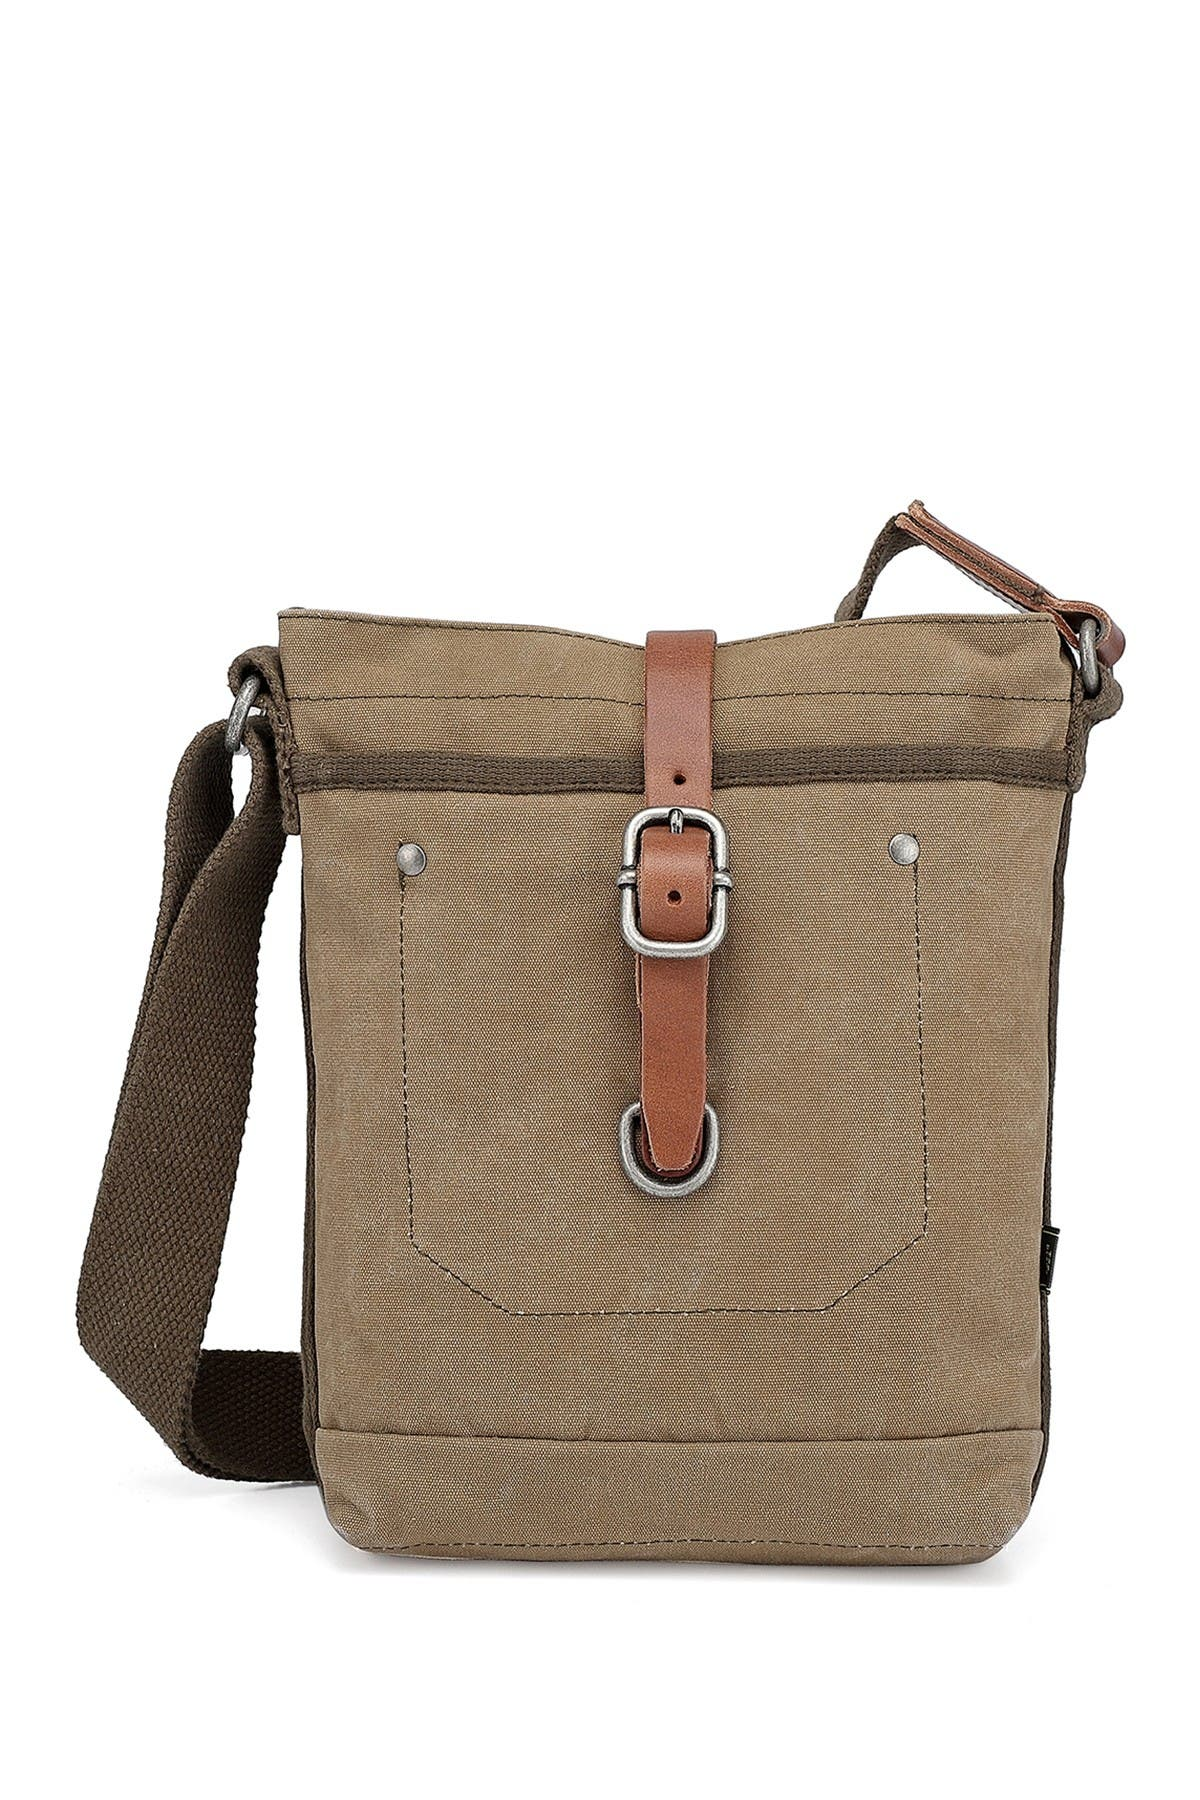 Image of TSD Forest Canvas Crossbody Bag